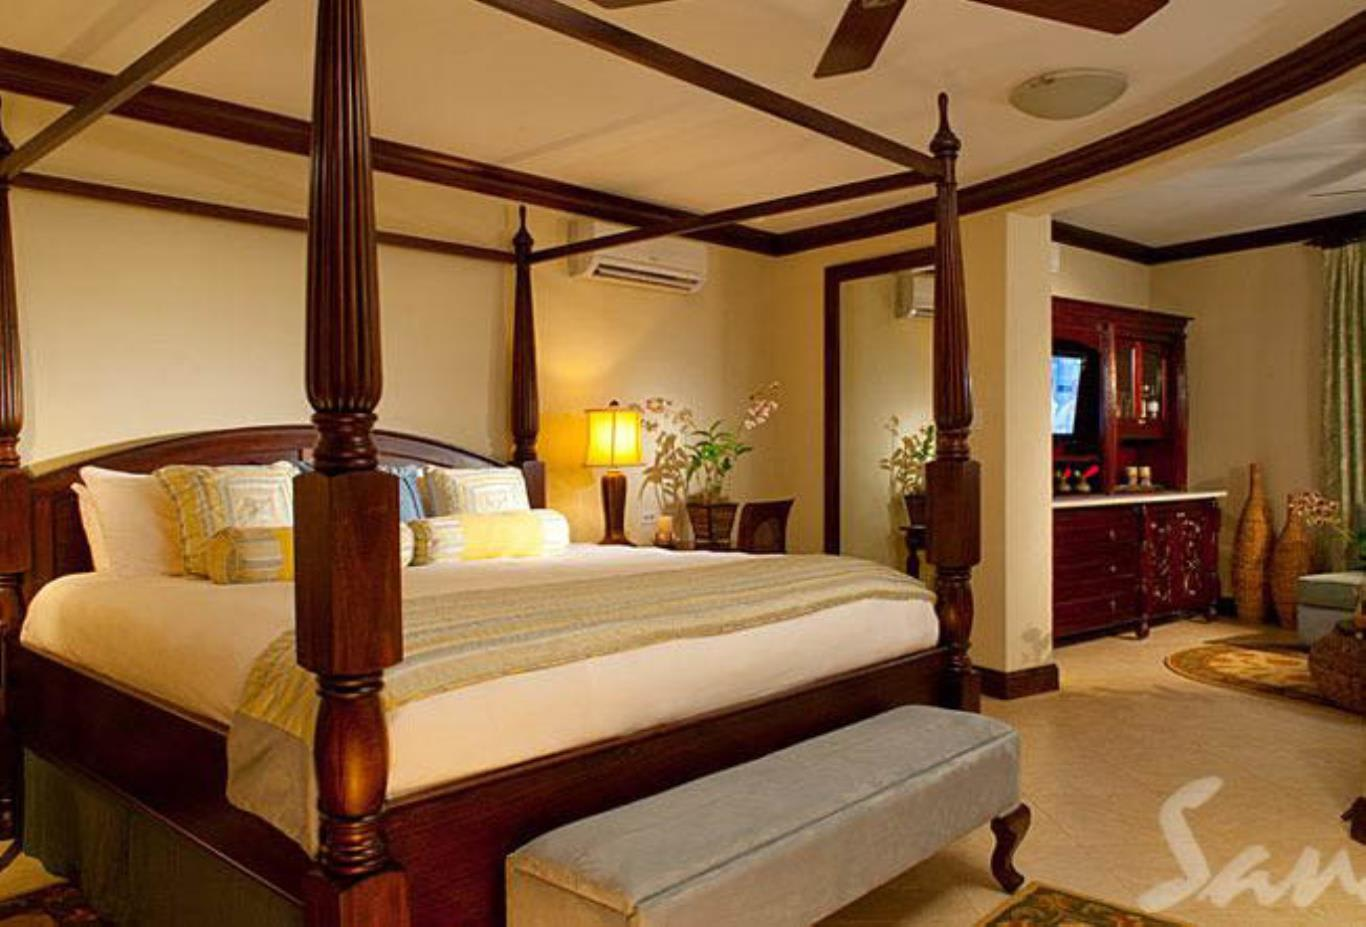 Millionaire Honeymoon One Bedroom Butler Suite with Private Pool Sanctuary - RJ